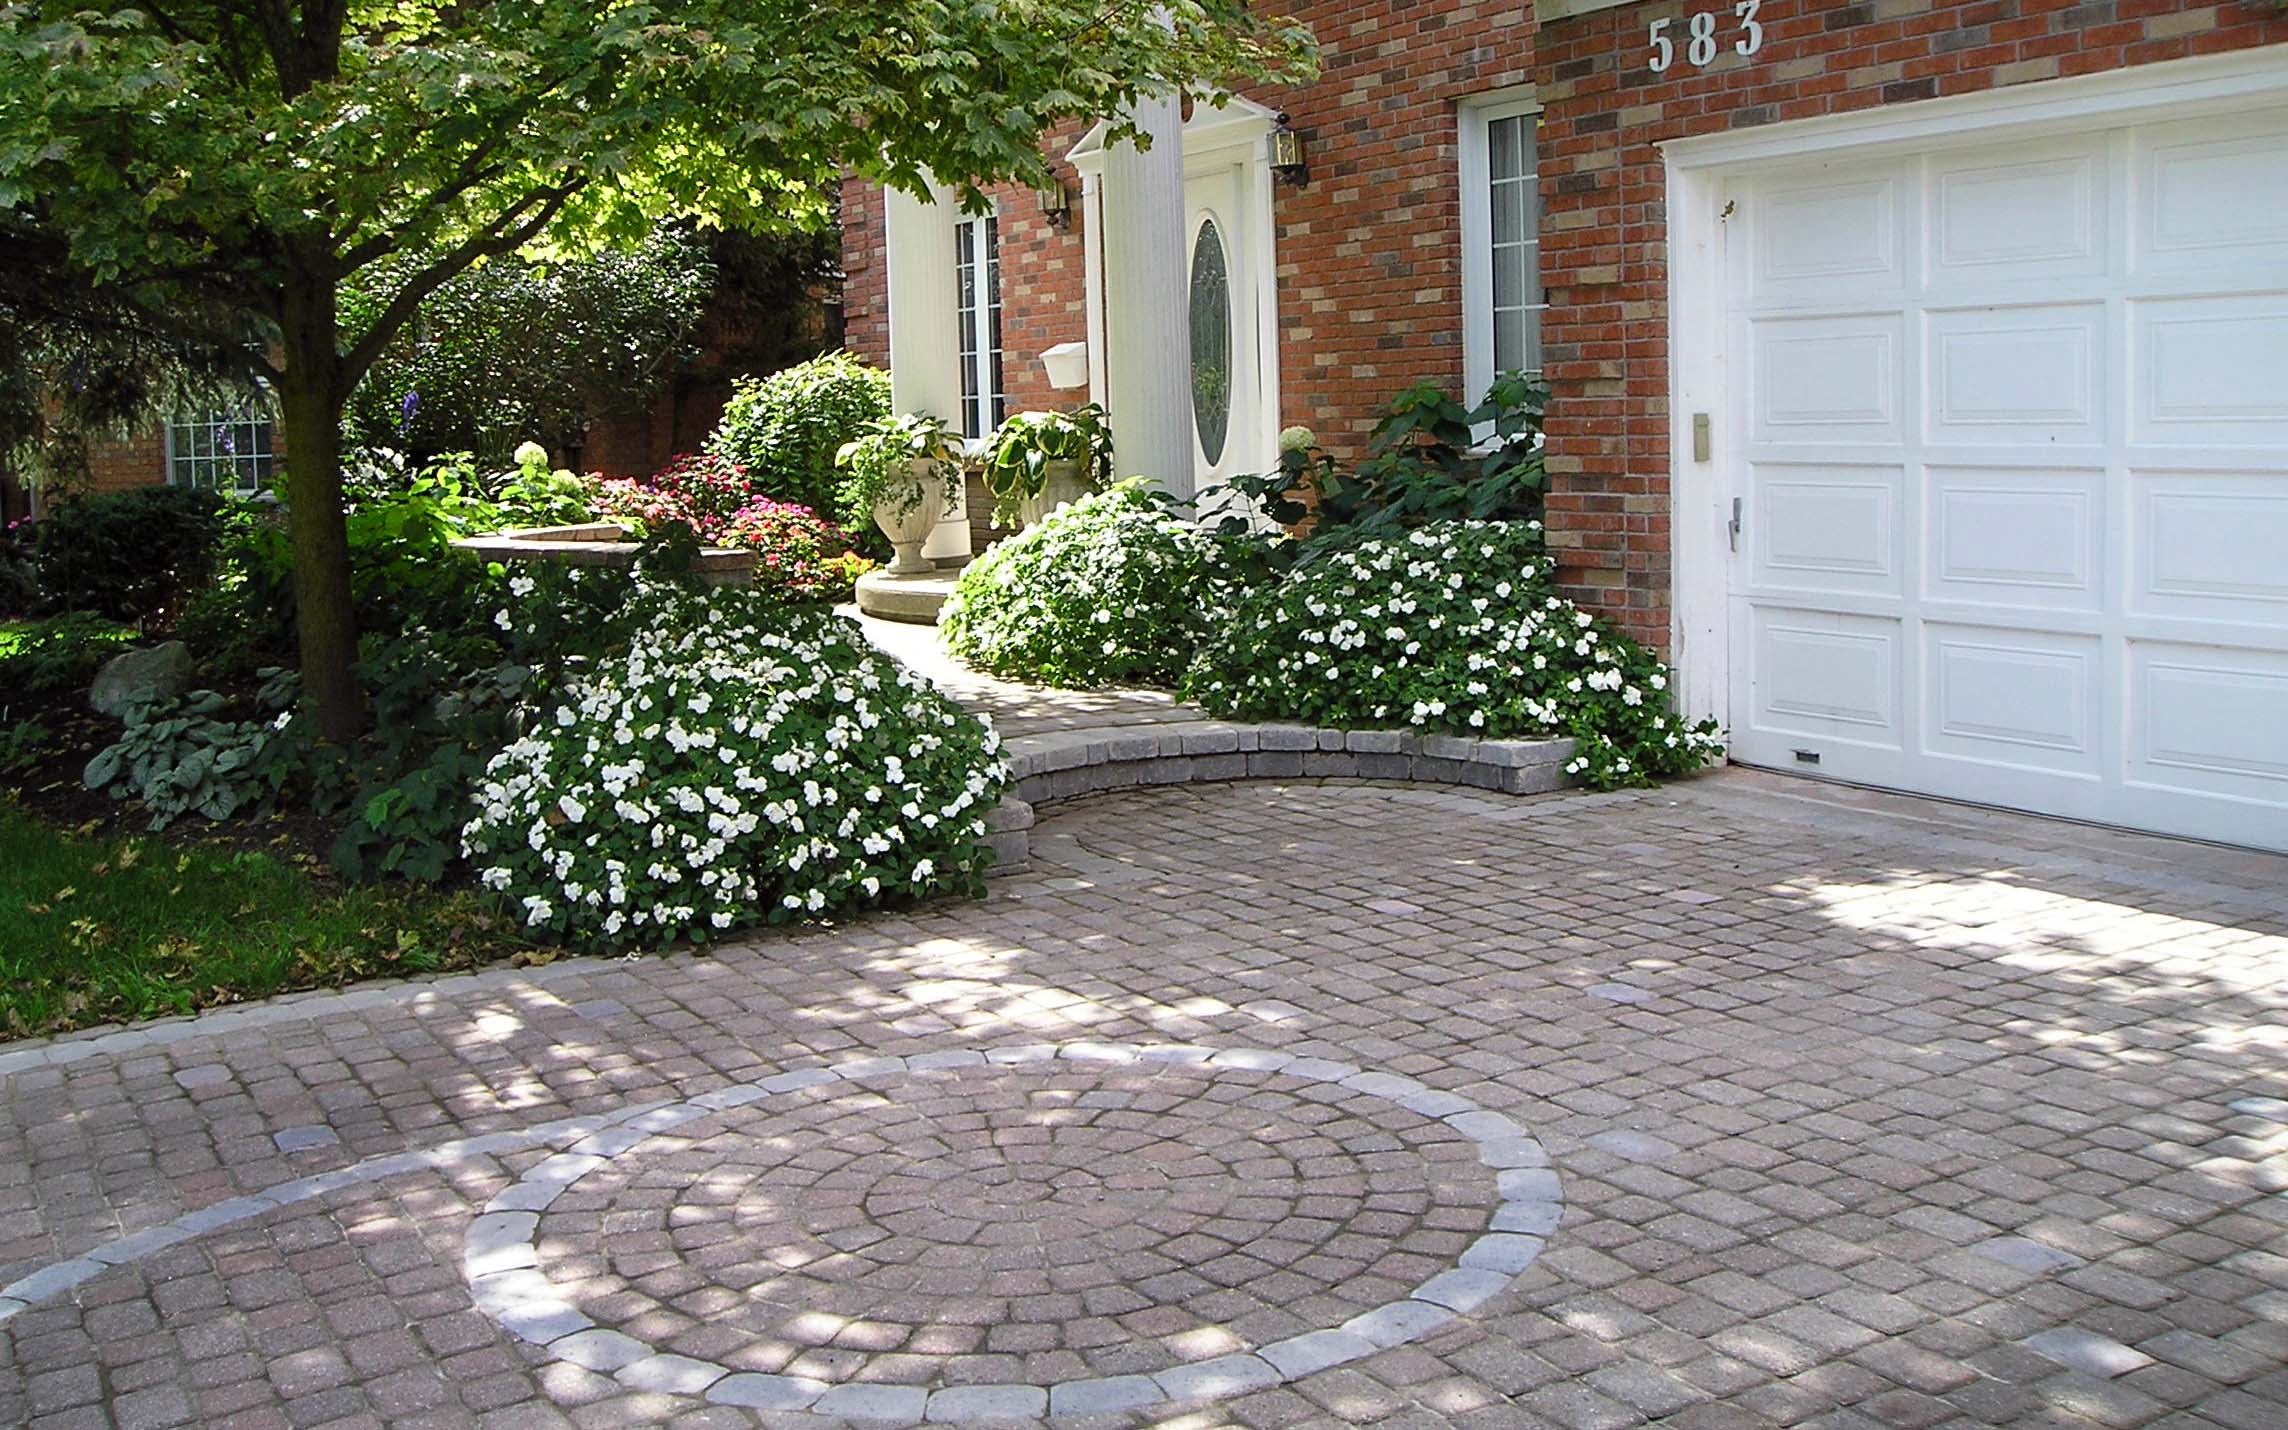 A beautiful stone driveway and entrance lined with a lush green garden.